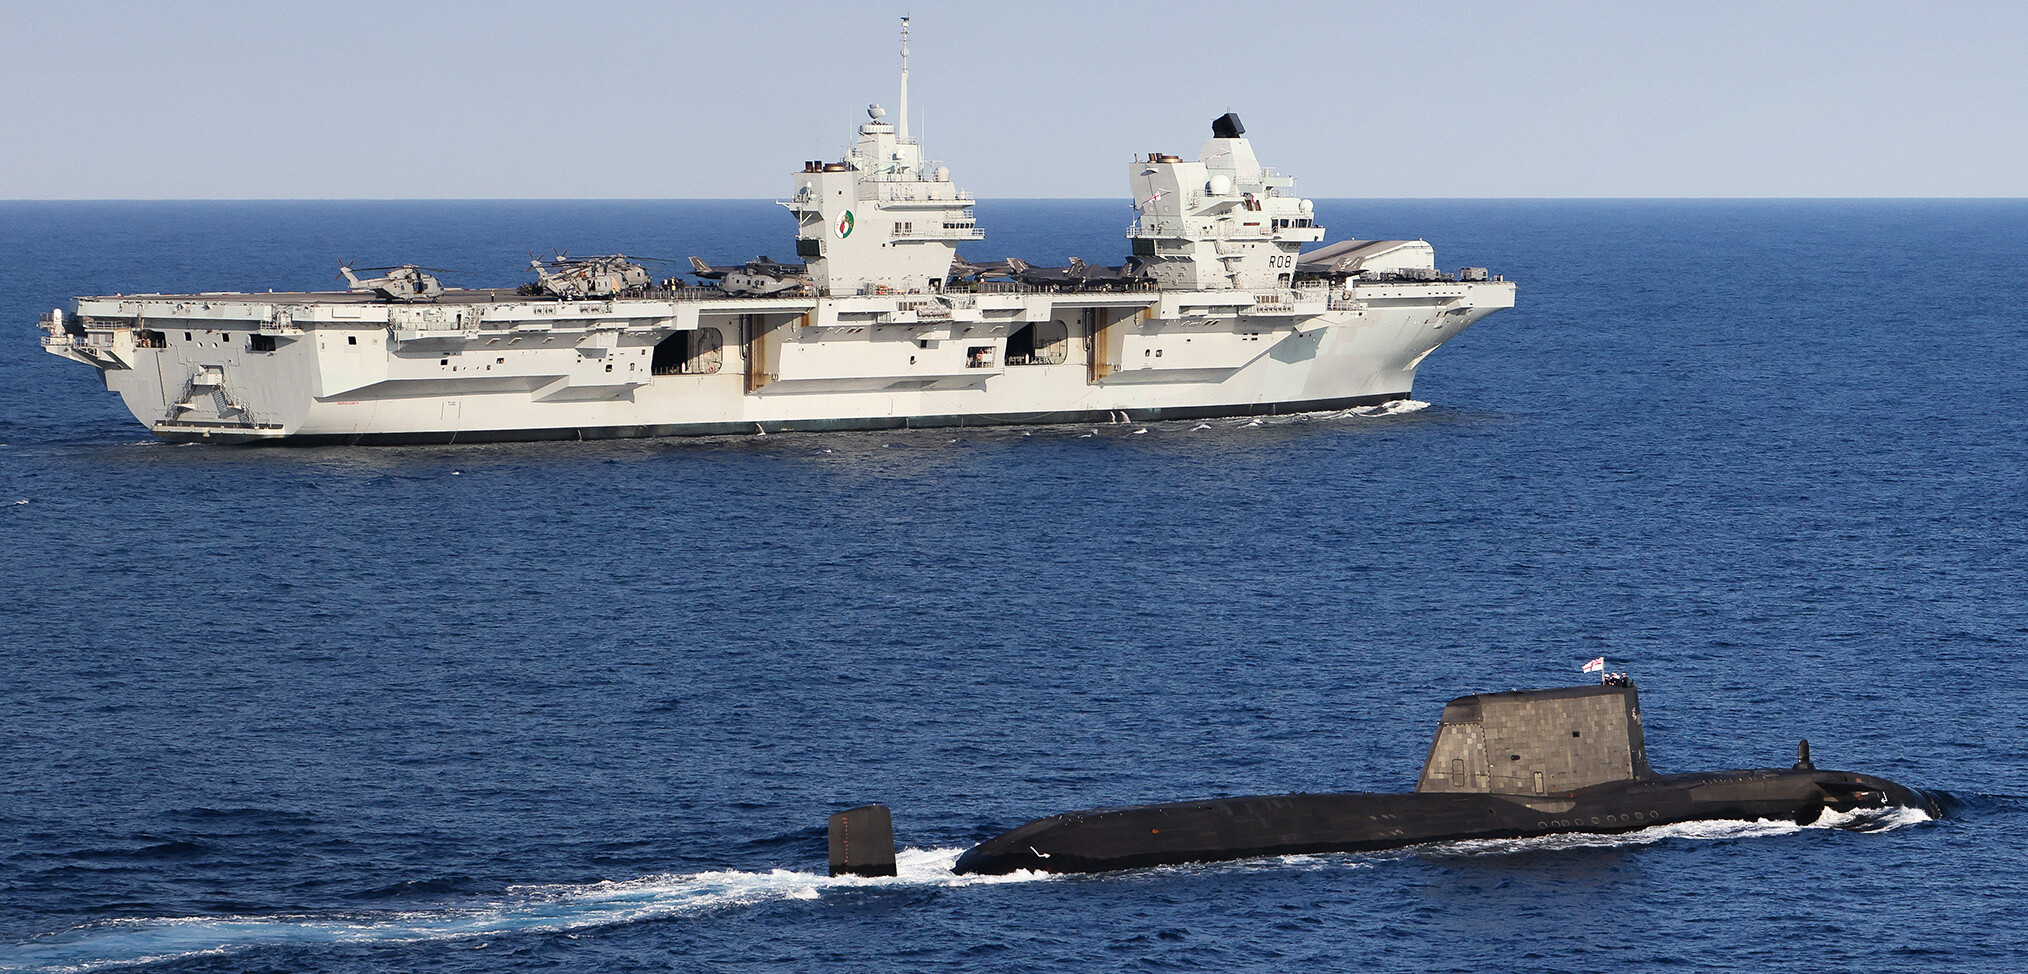 Meeting of the mighty. HMS Queen Elizabeth and her submarine consort